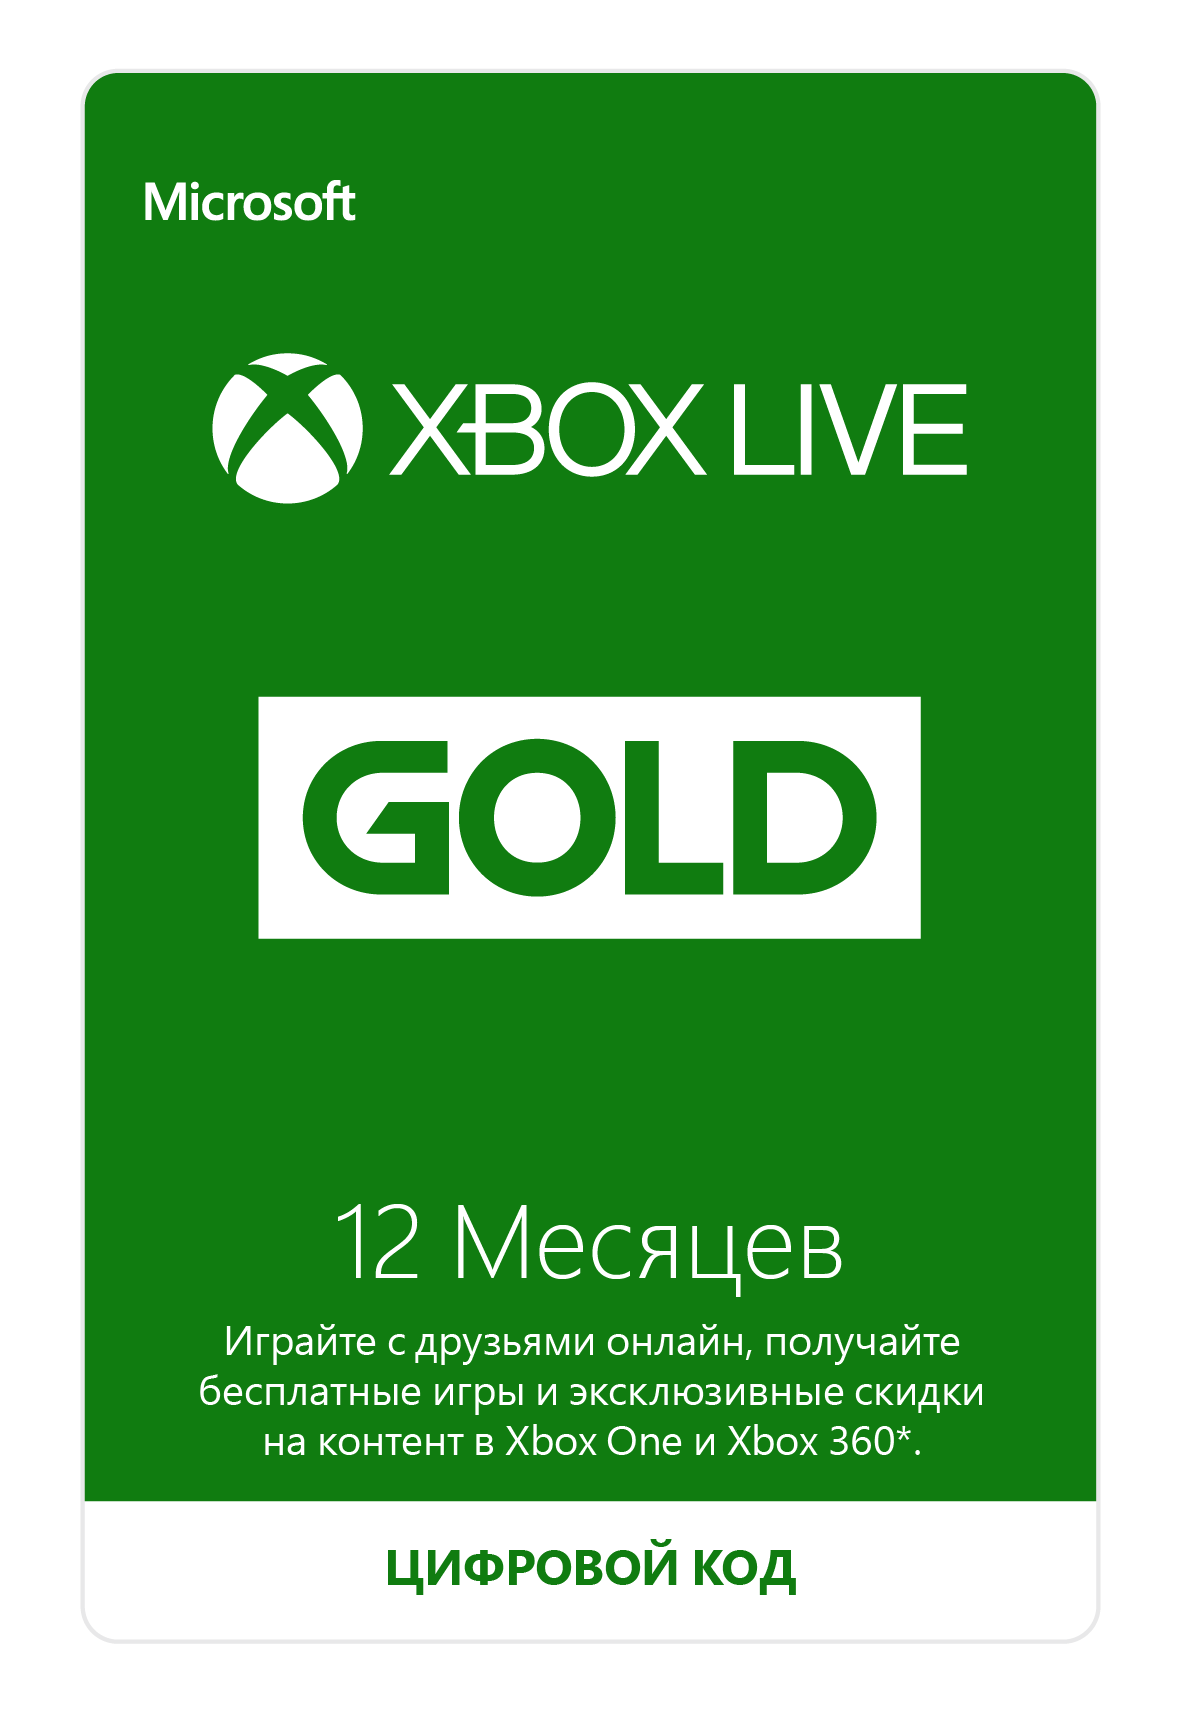 xBox Live Gold - Gold status on 12 months!